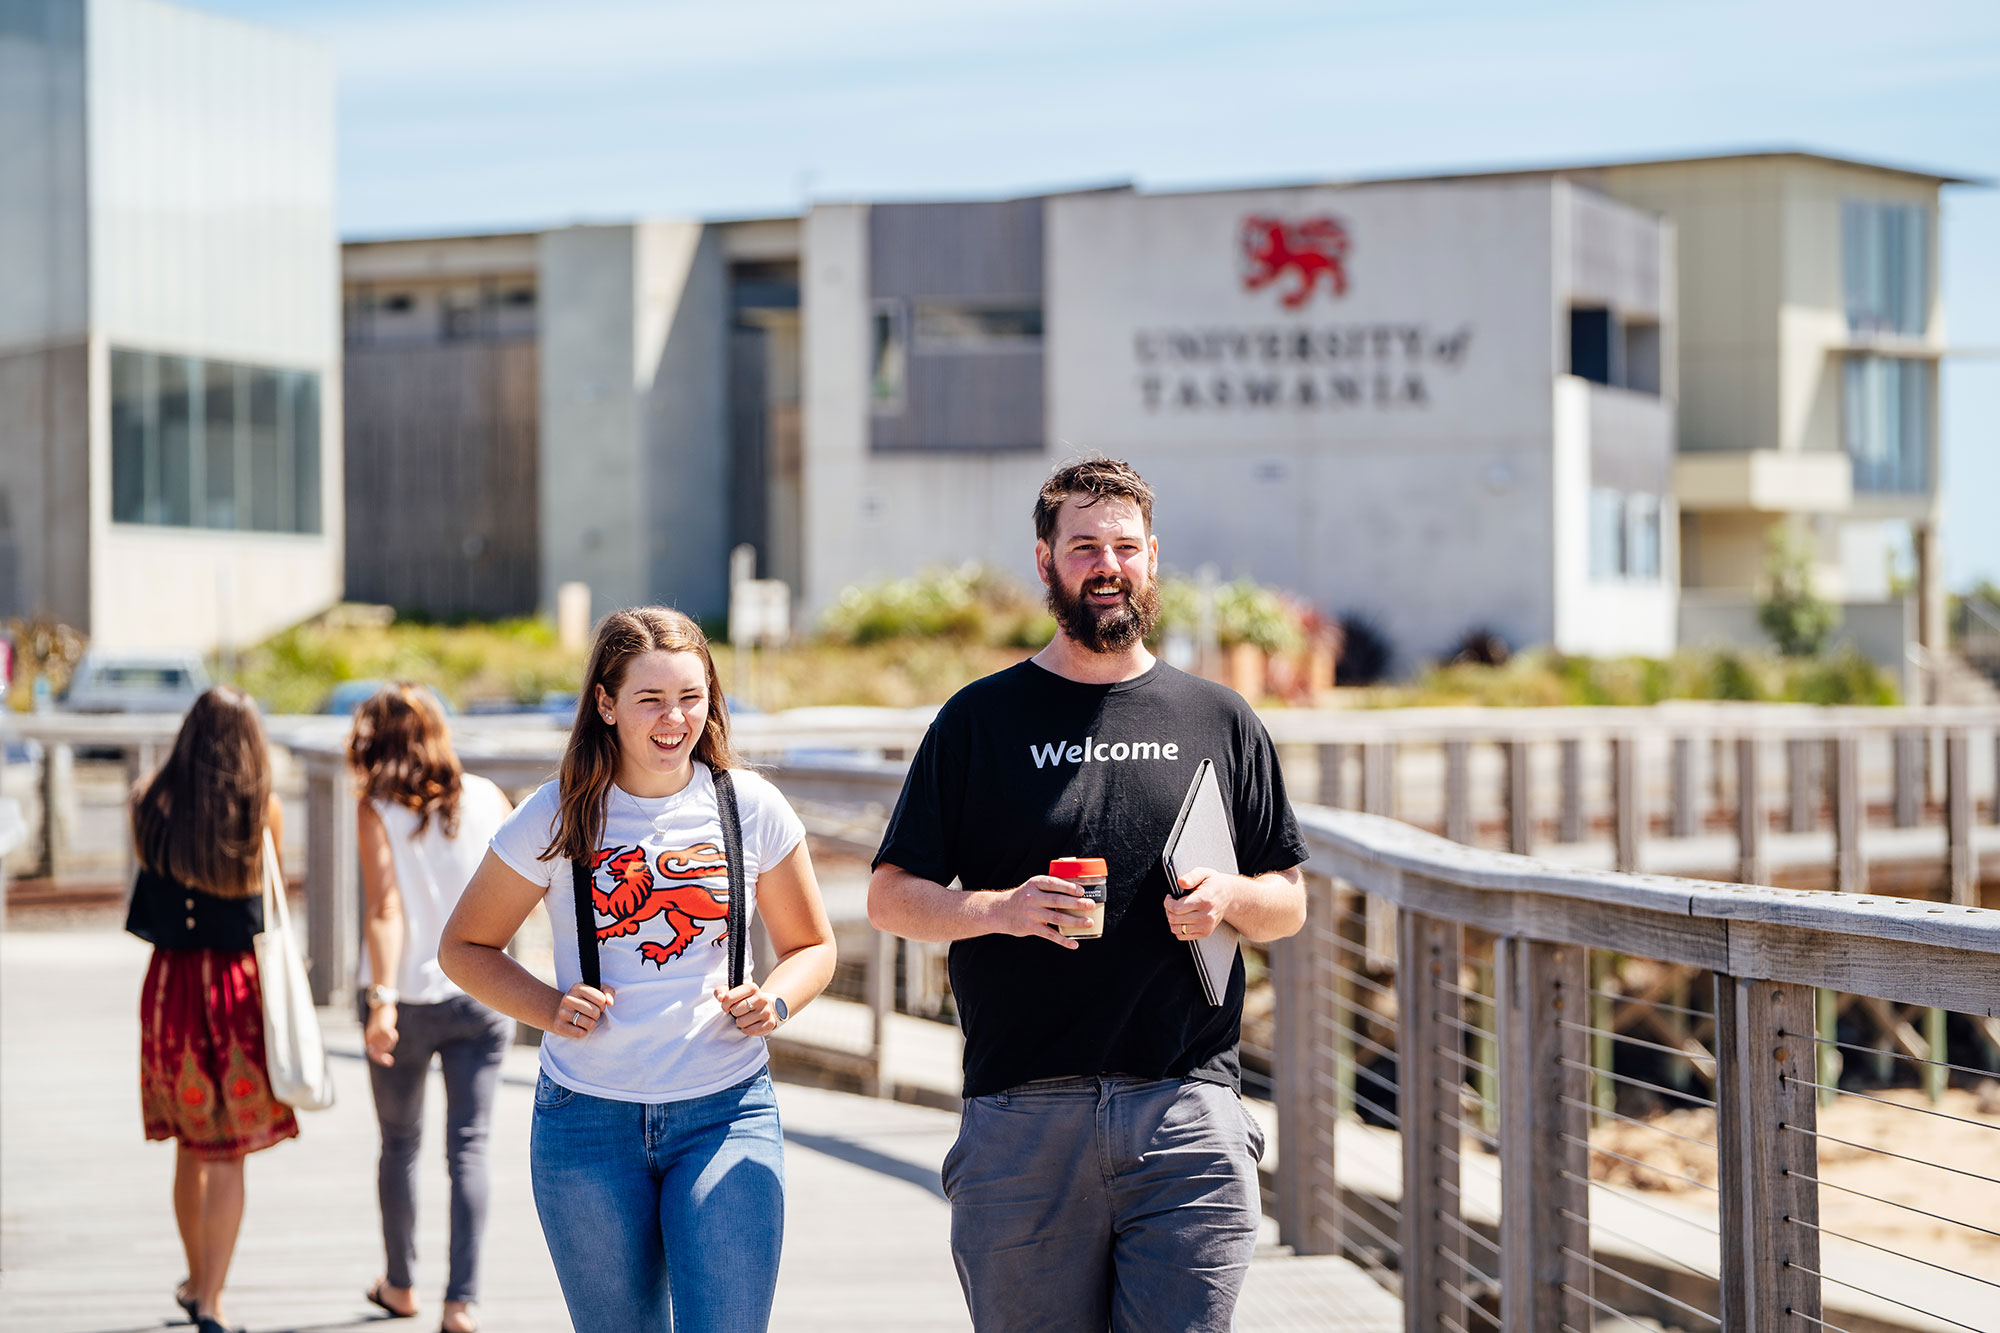 Students walking along Burnie's boardwalk, with campus in the background.